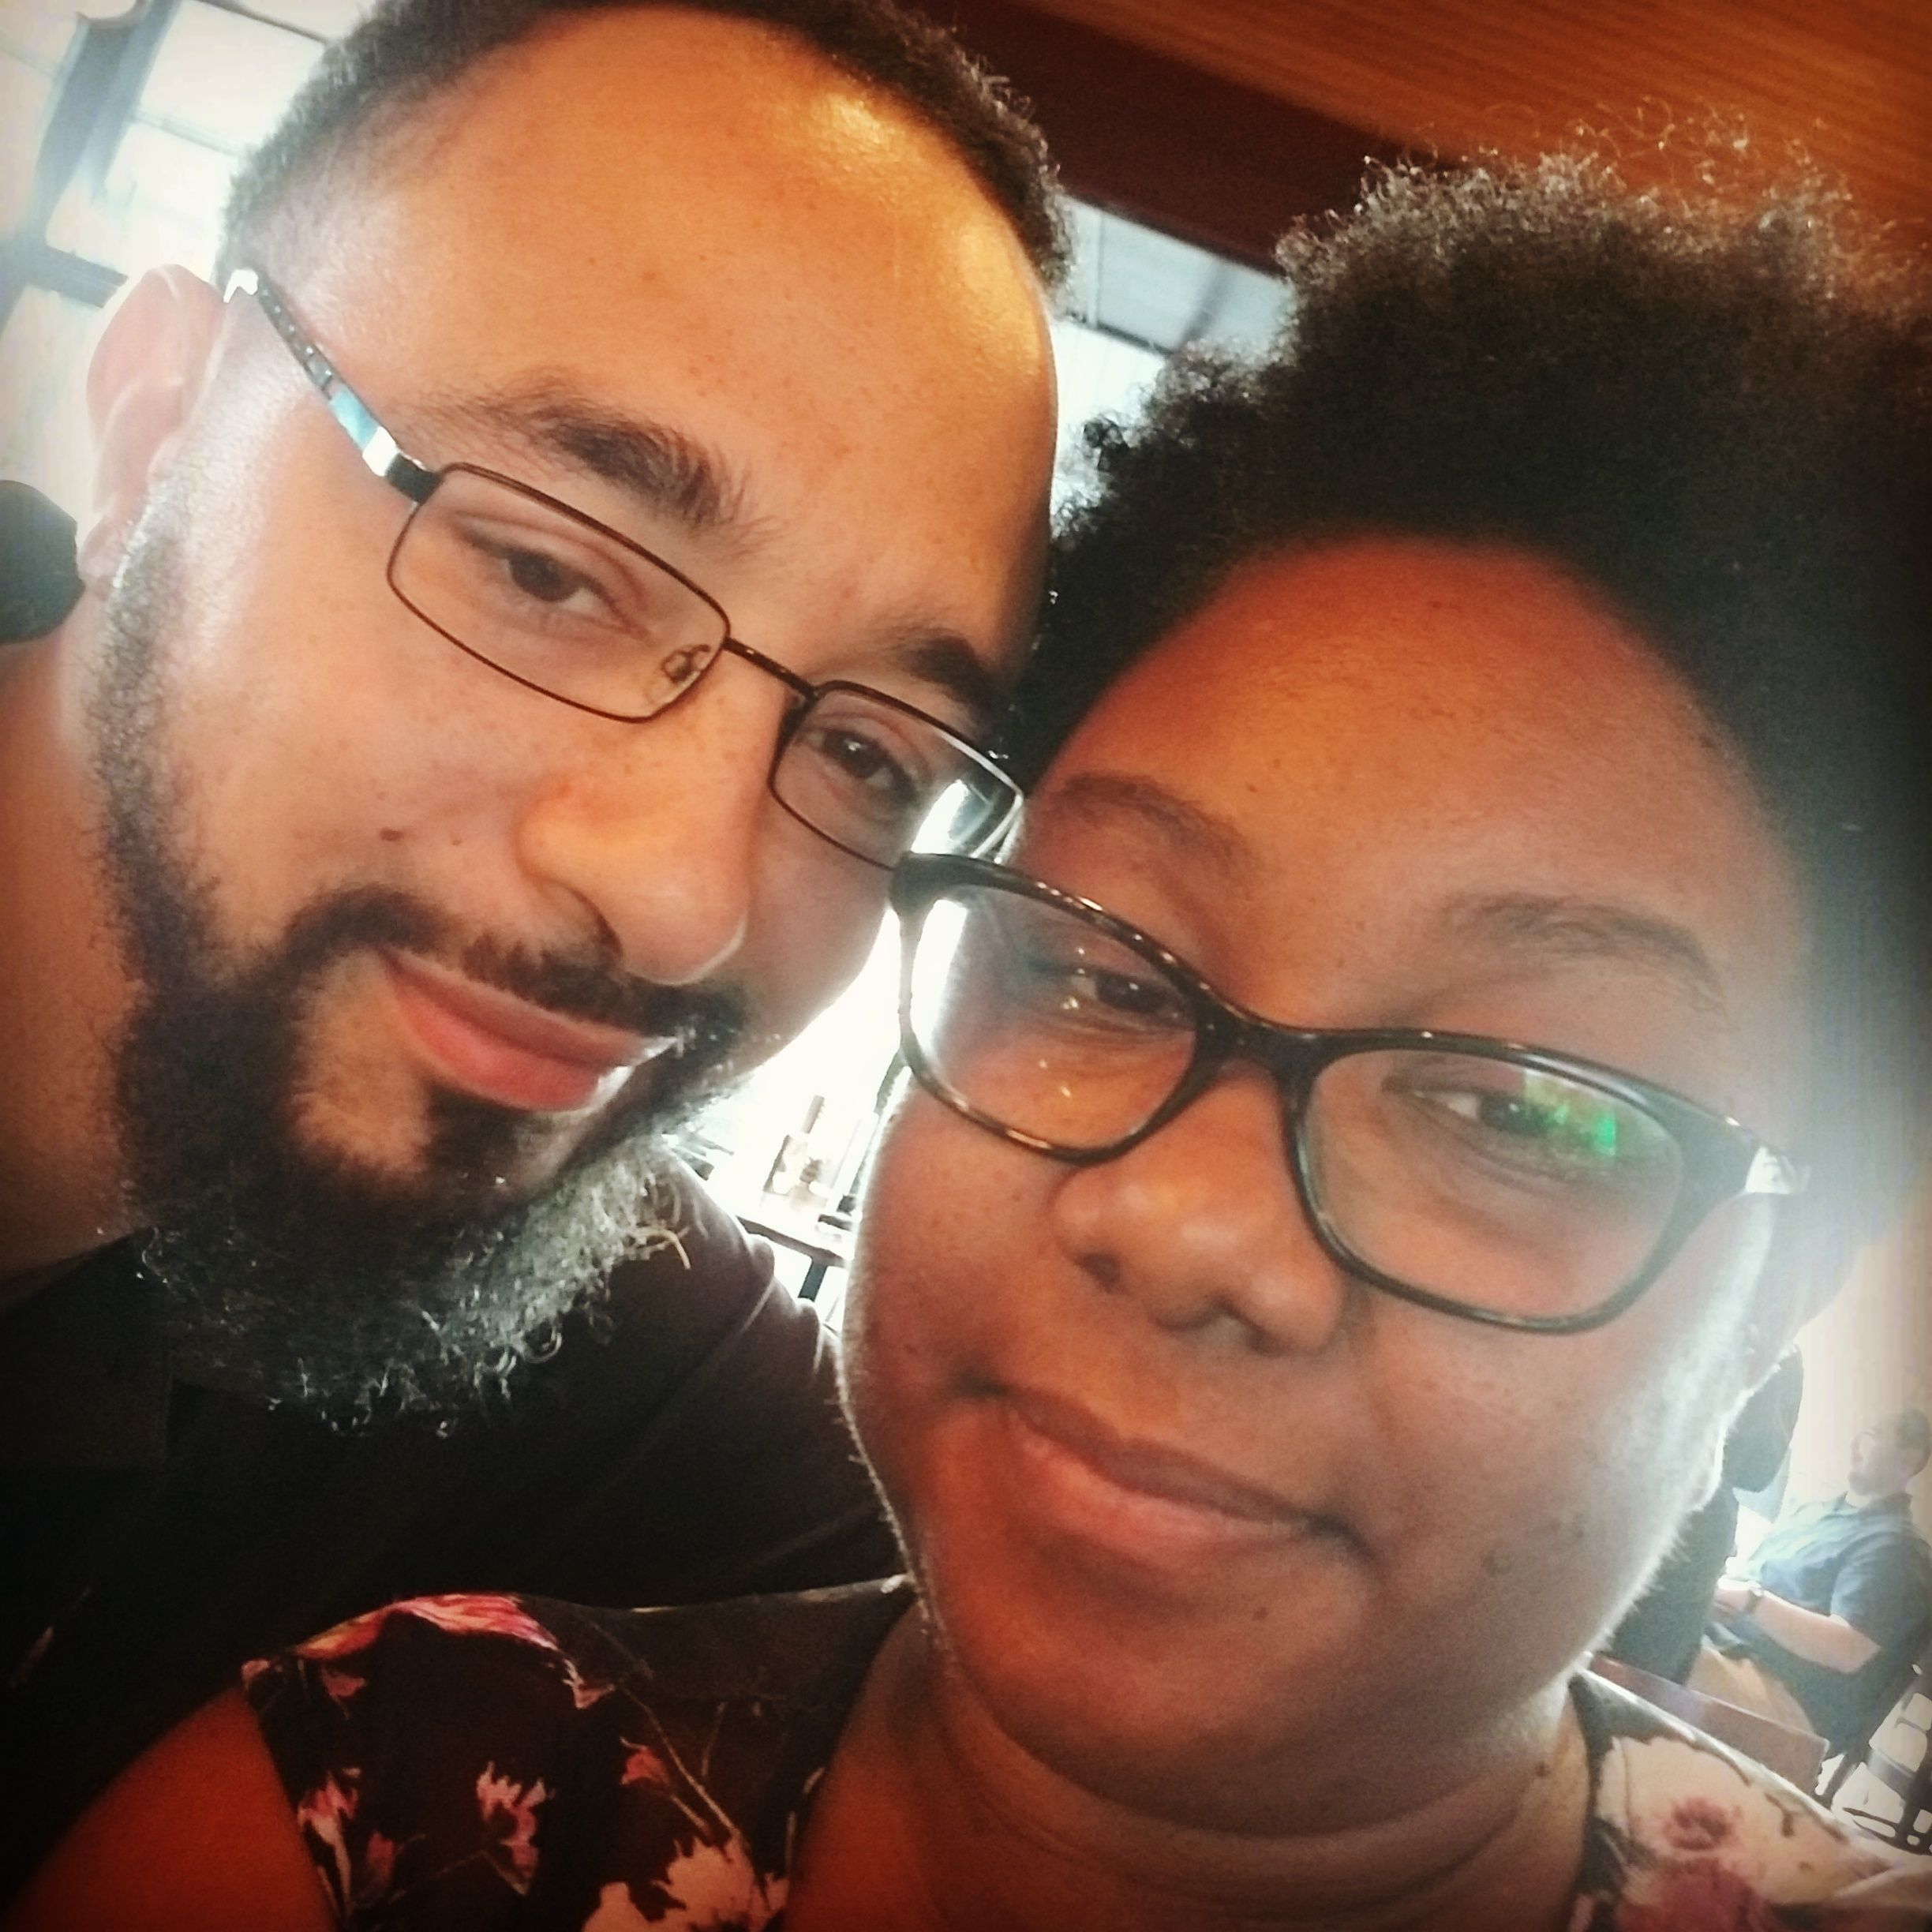 reisterstown black personals Tired of dating the wrong people eharmony's trusted dating site connects maryland singles on personalities & lifestyle for more meaningful relationships.